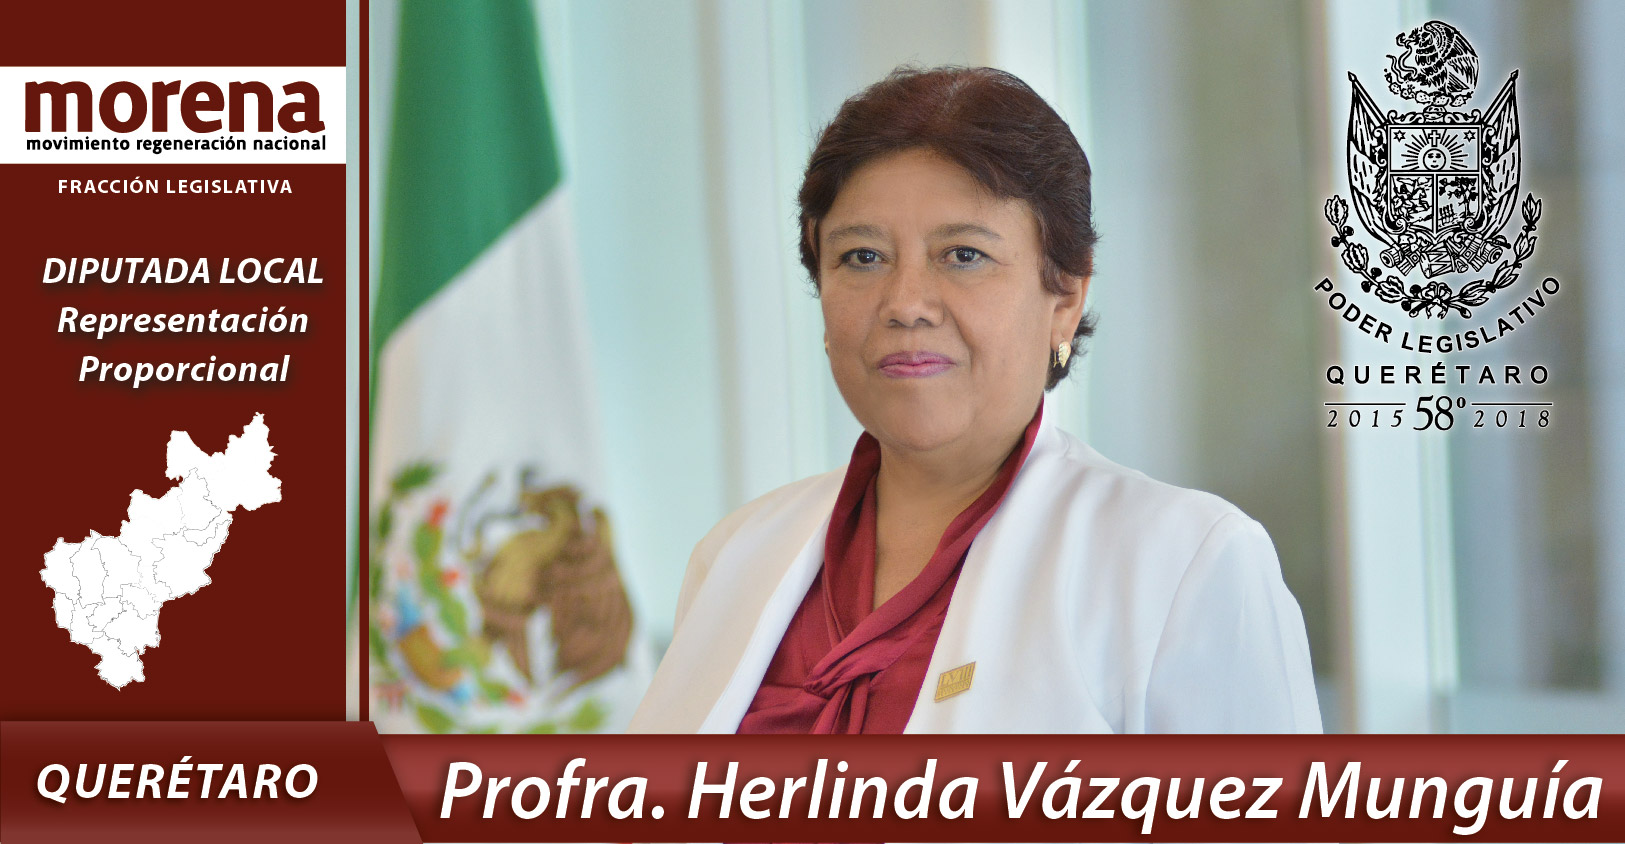 herlinda_vazquez_munguia